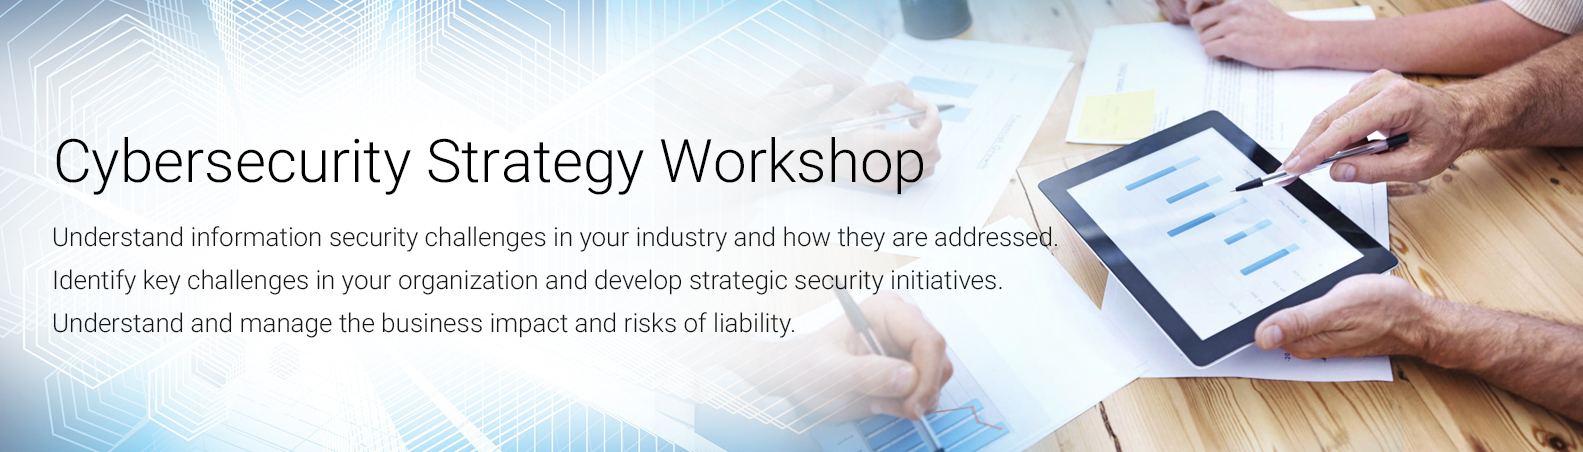 cyber_security_strategy